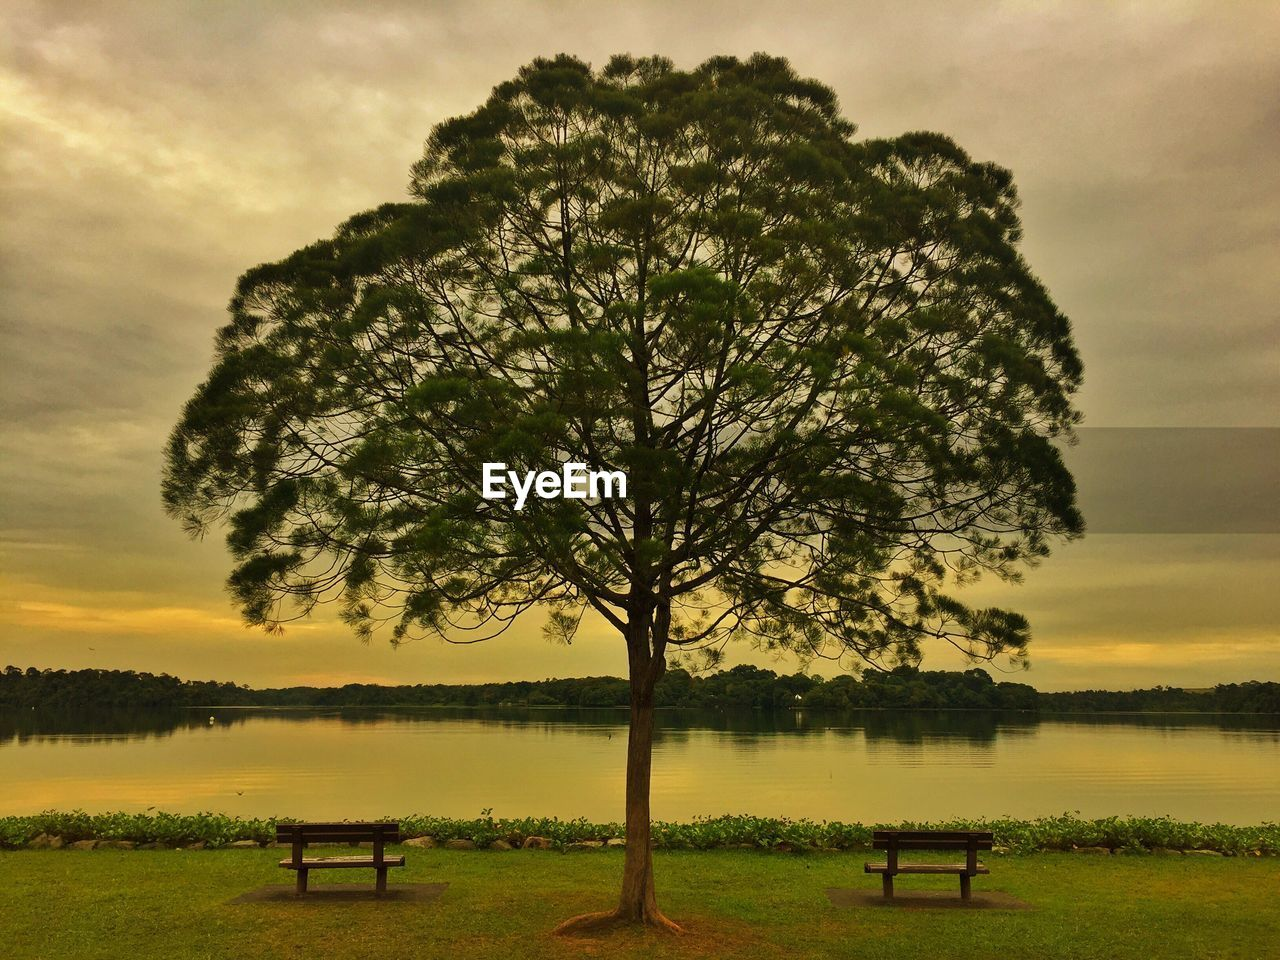 tree, nature, tranquility, beauty in nature, tranquil scene, scenics, lake, sky, idyllic, water, no people, sunset, bird, landscape, outdoors, grass, animal themes, scenery, day